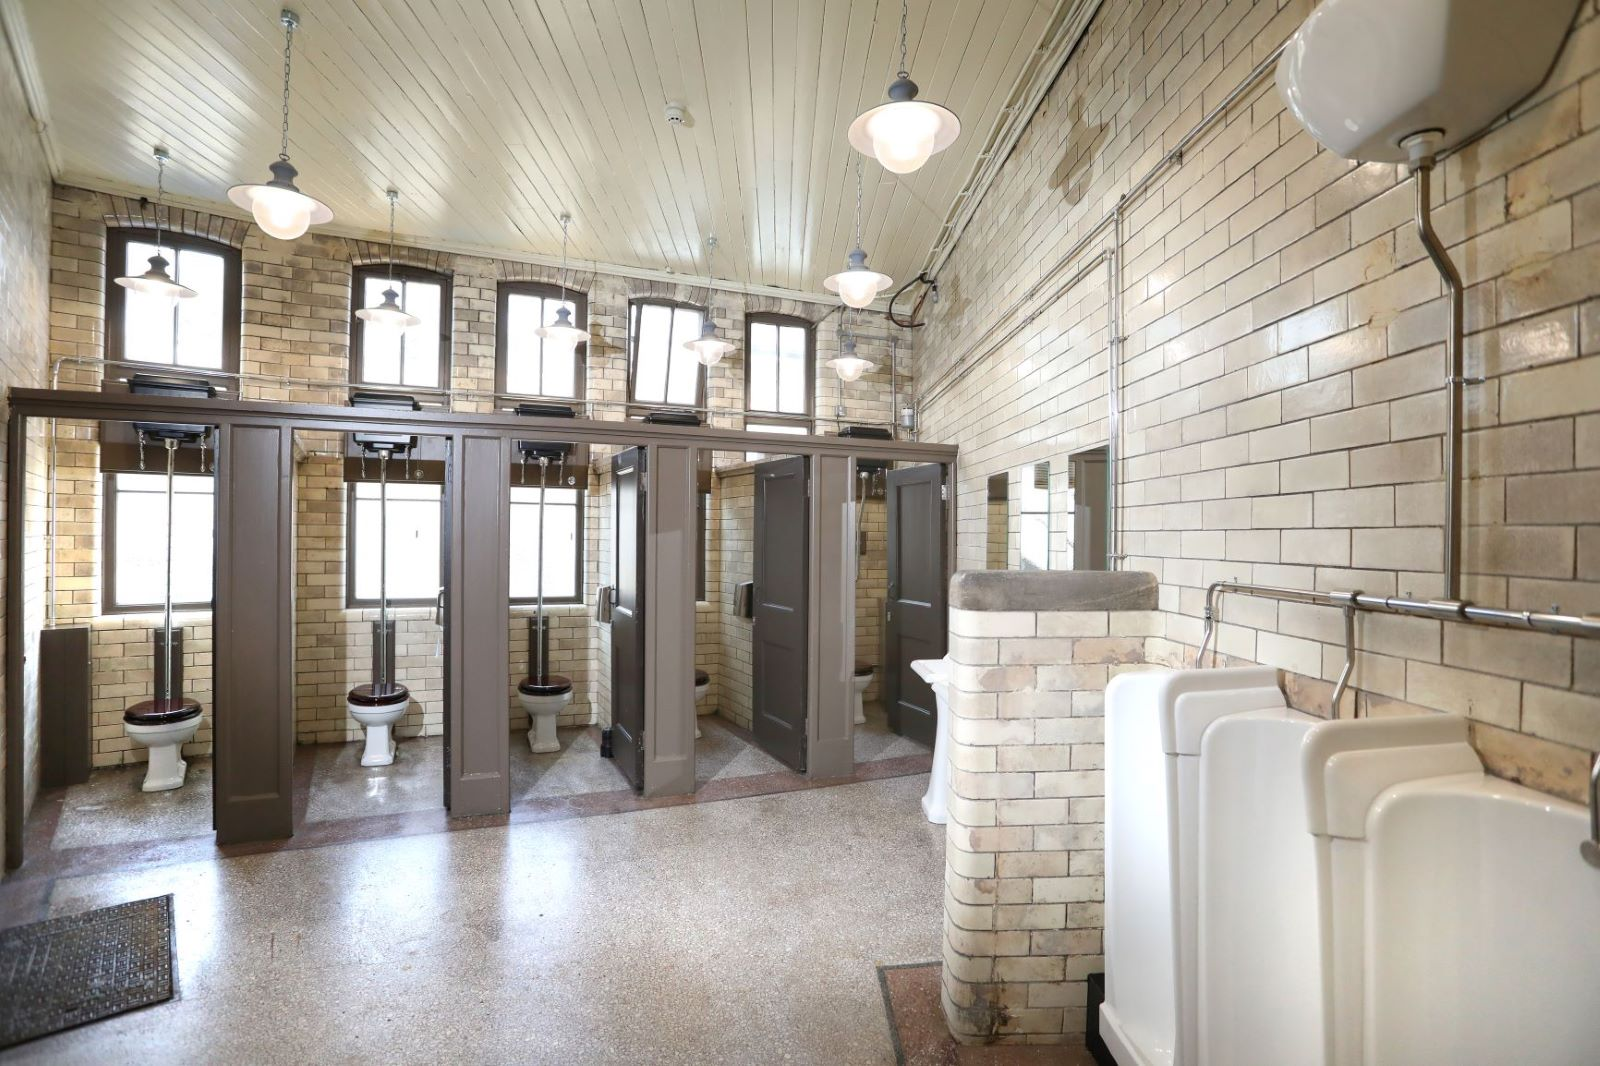 Historic Newcastle Central Station Facilities Restored